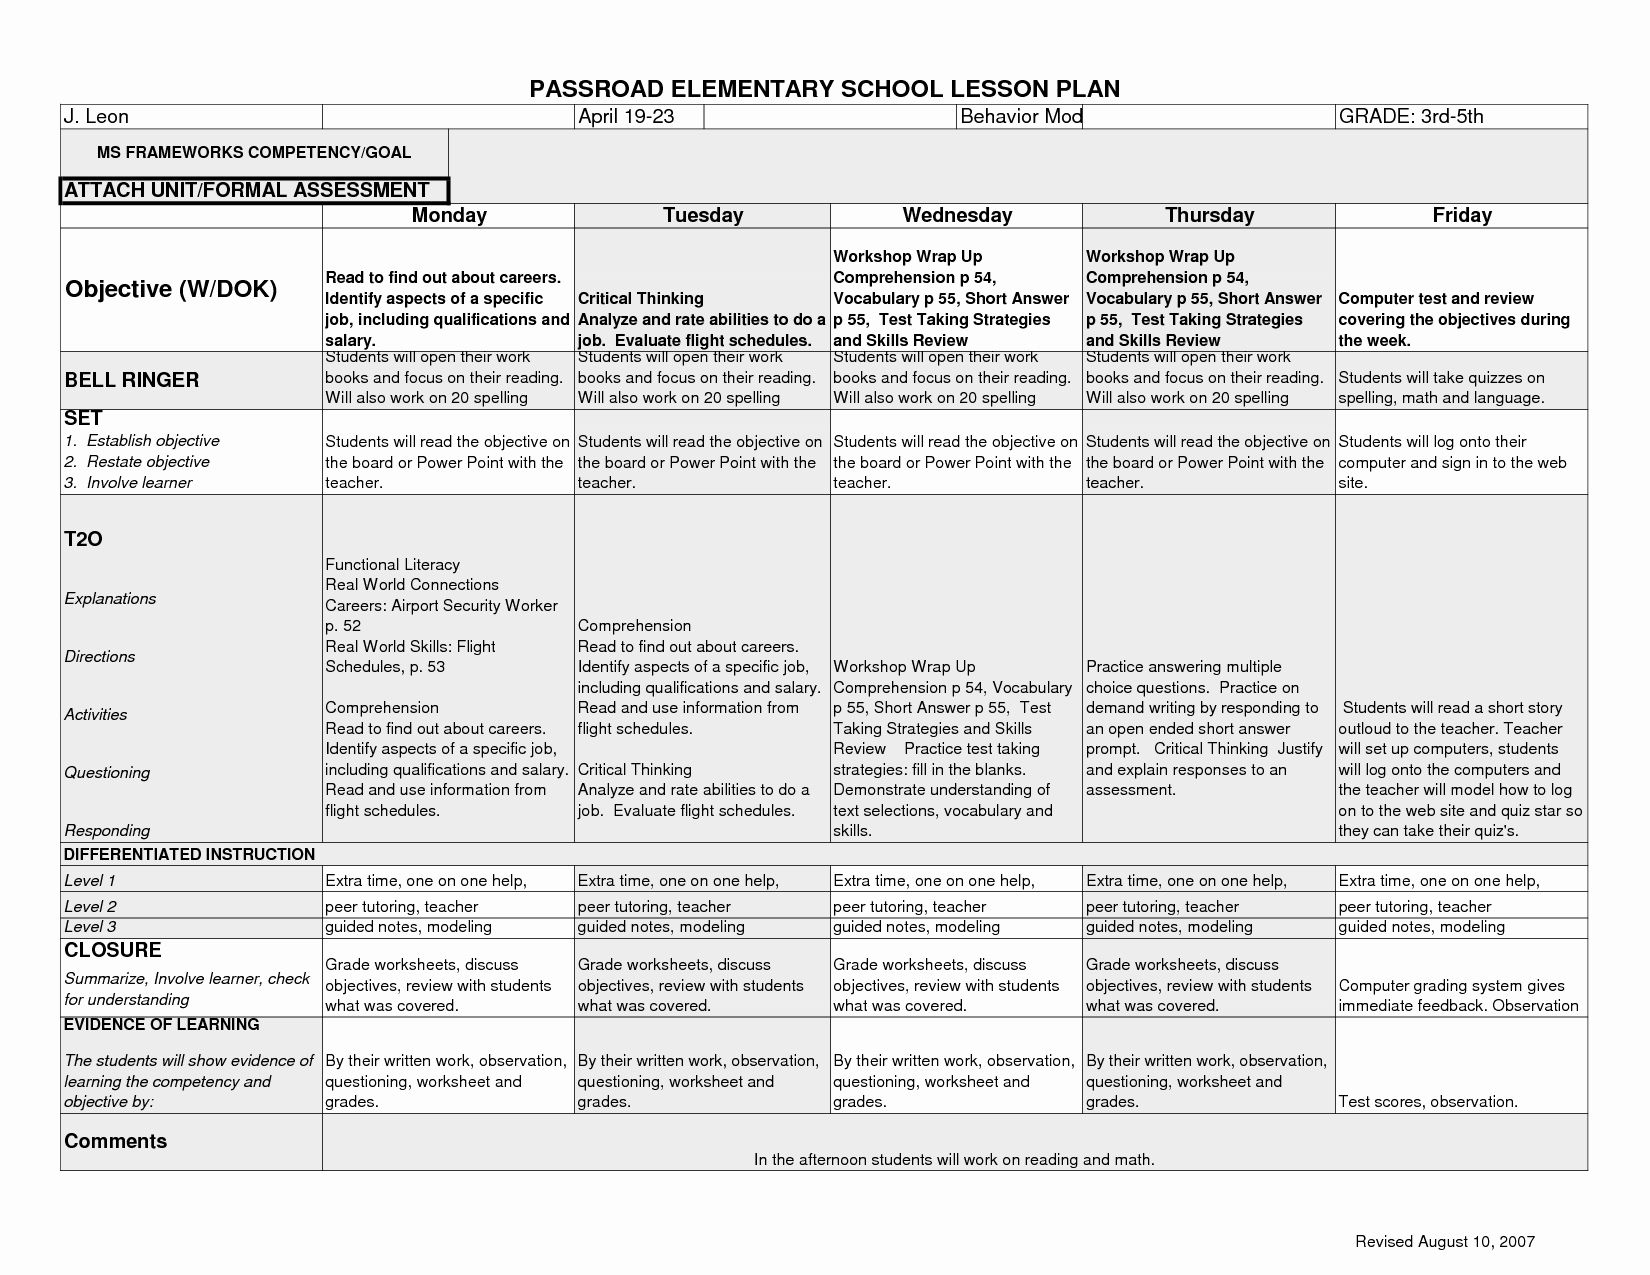 Lovely Lesson Plans Template For Elementary In